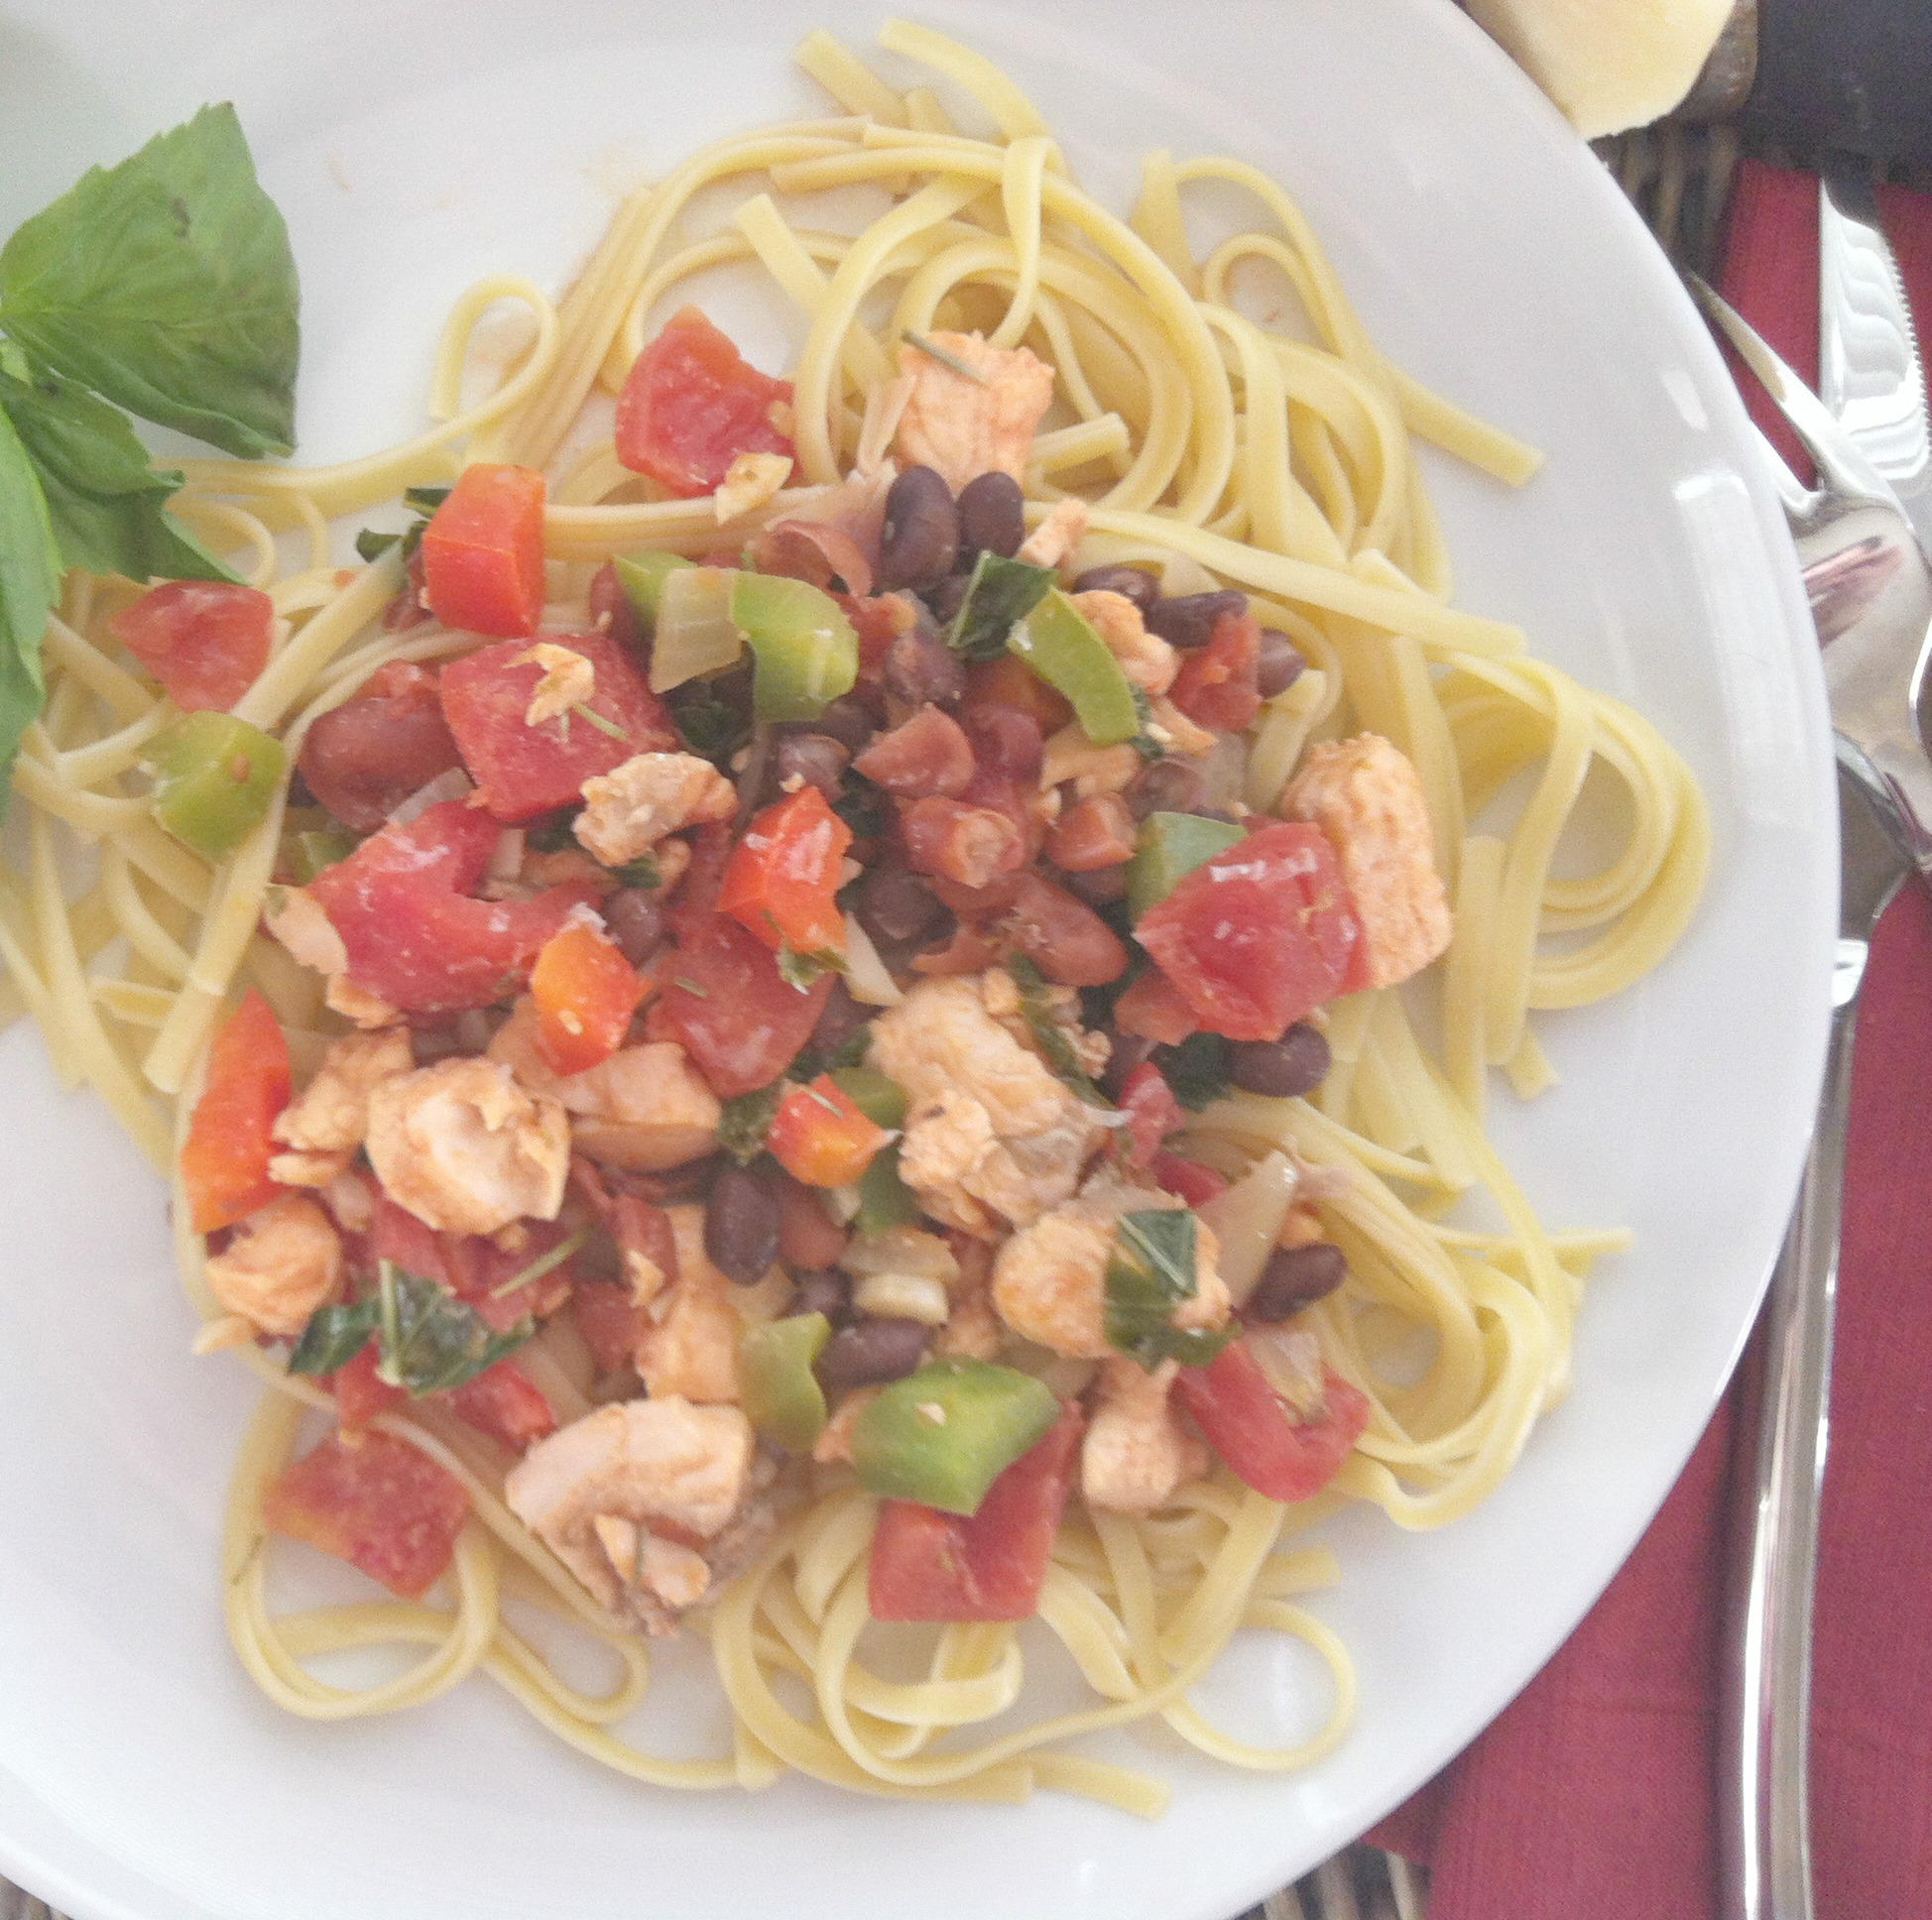 This delicious Salmon Linguine is a light and healthy meal made from a recipe passed down to me from my Mom.